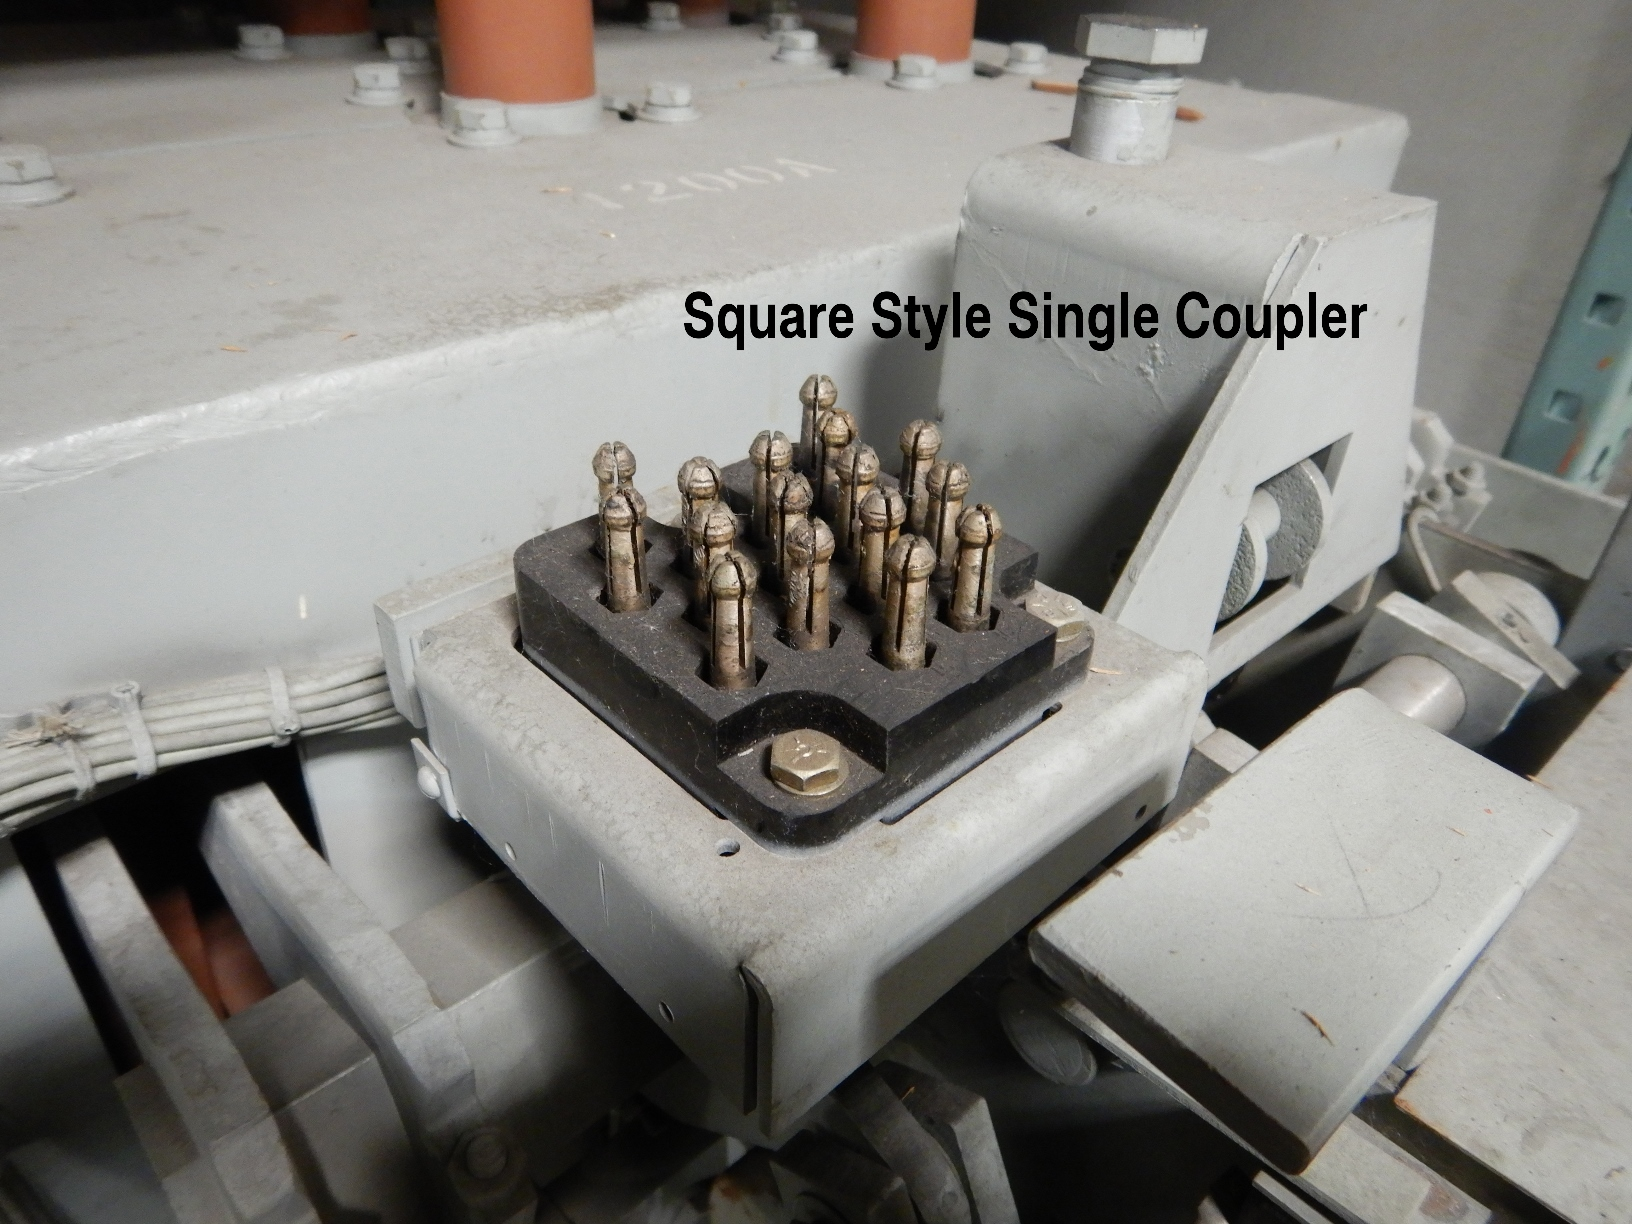 Square style single coupler Magne-Blast breaker.